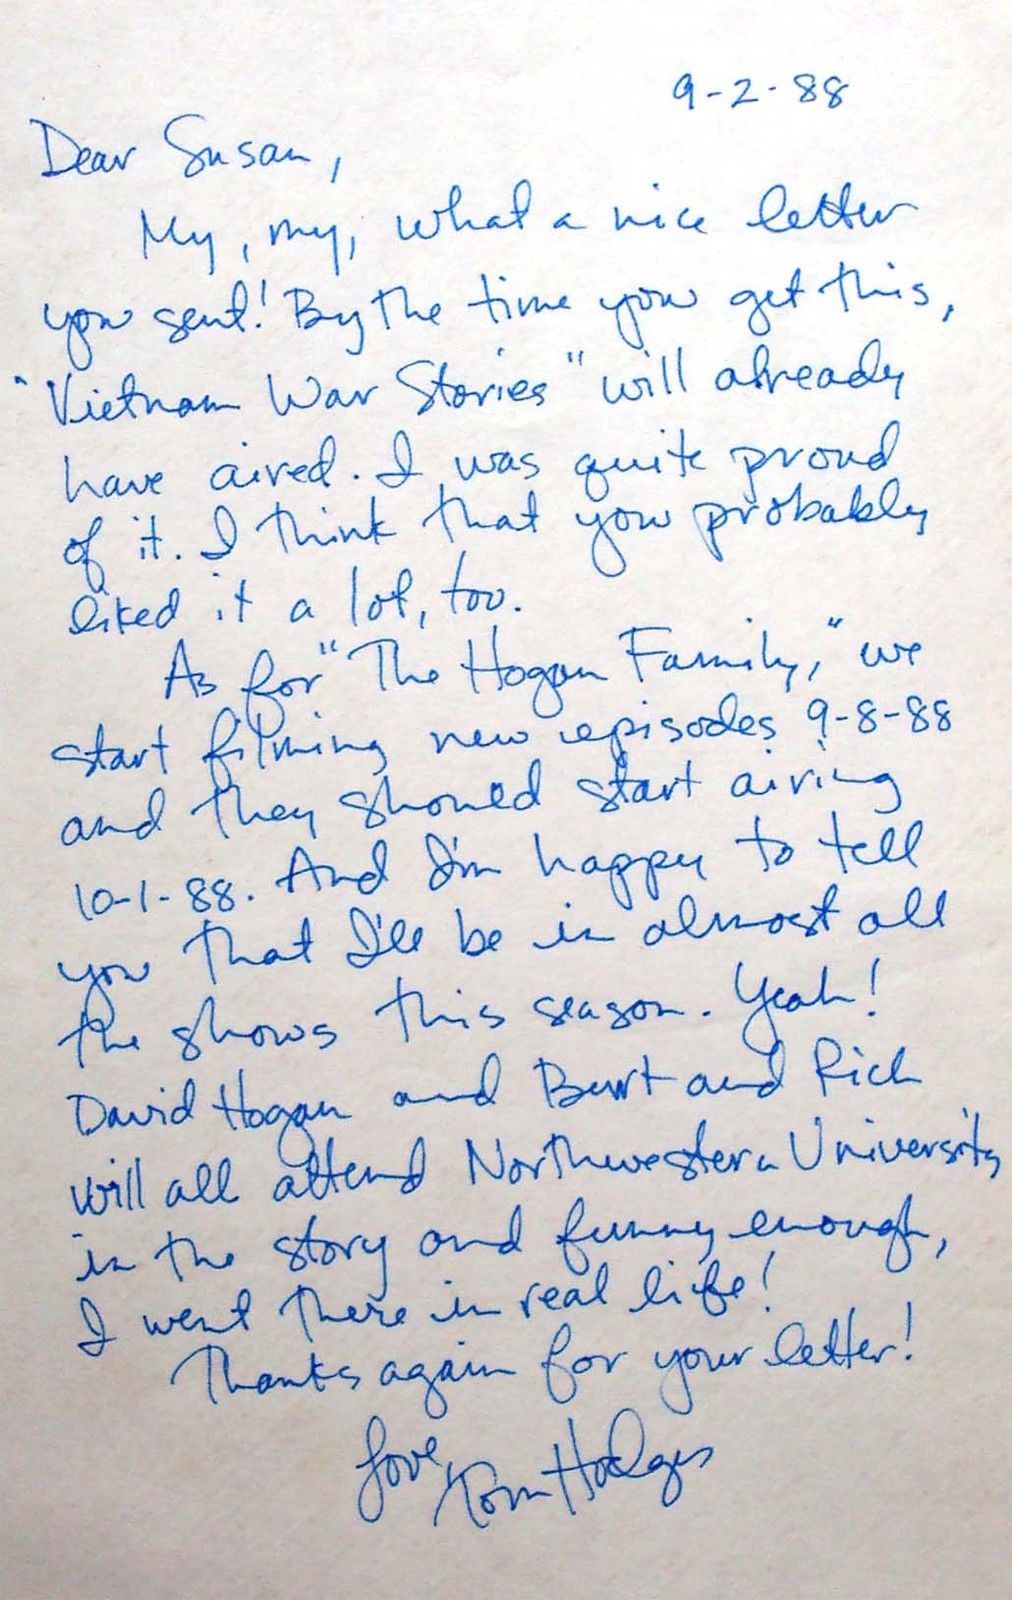 Tom_Hodges_rare_hand_written_letter_autograph_1988_The_Hogan_Family